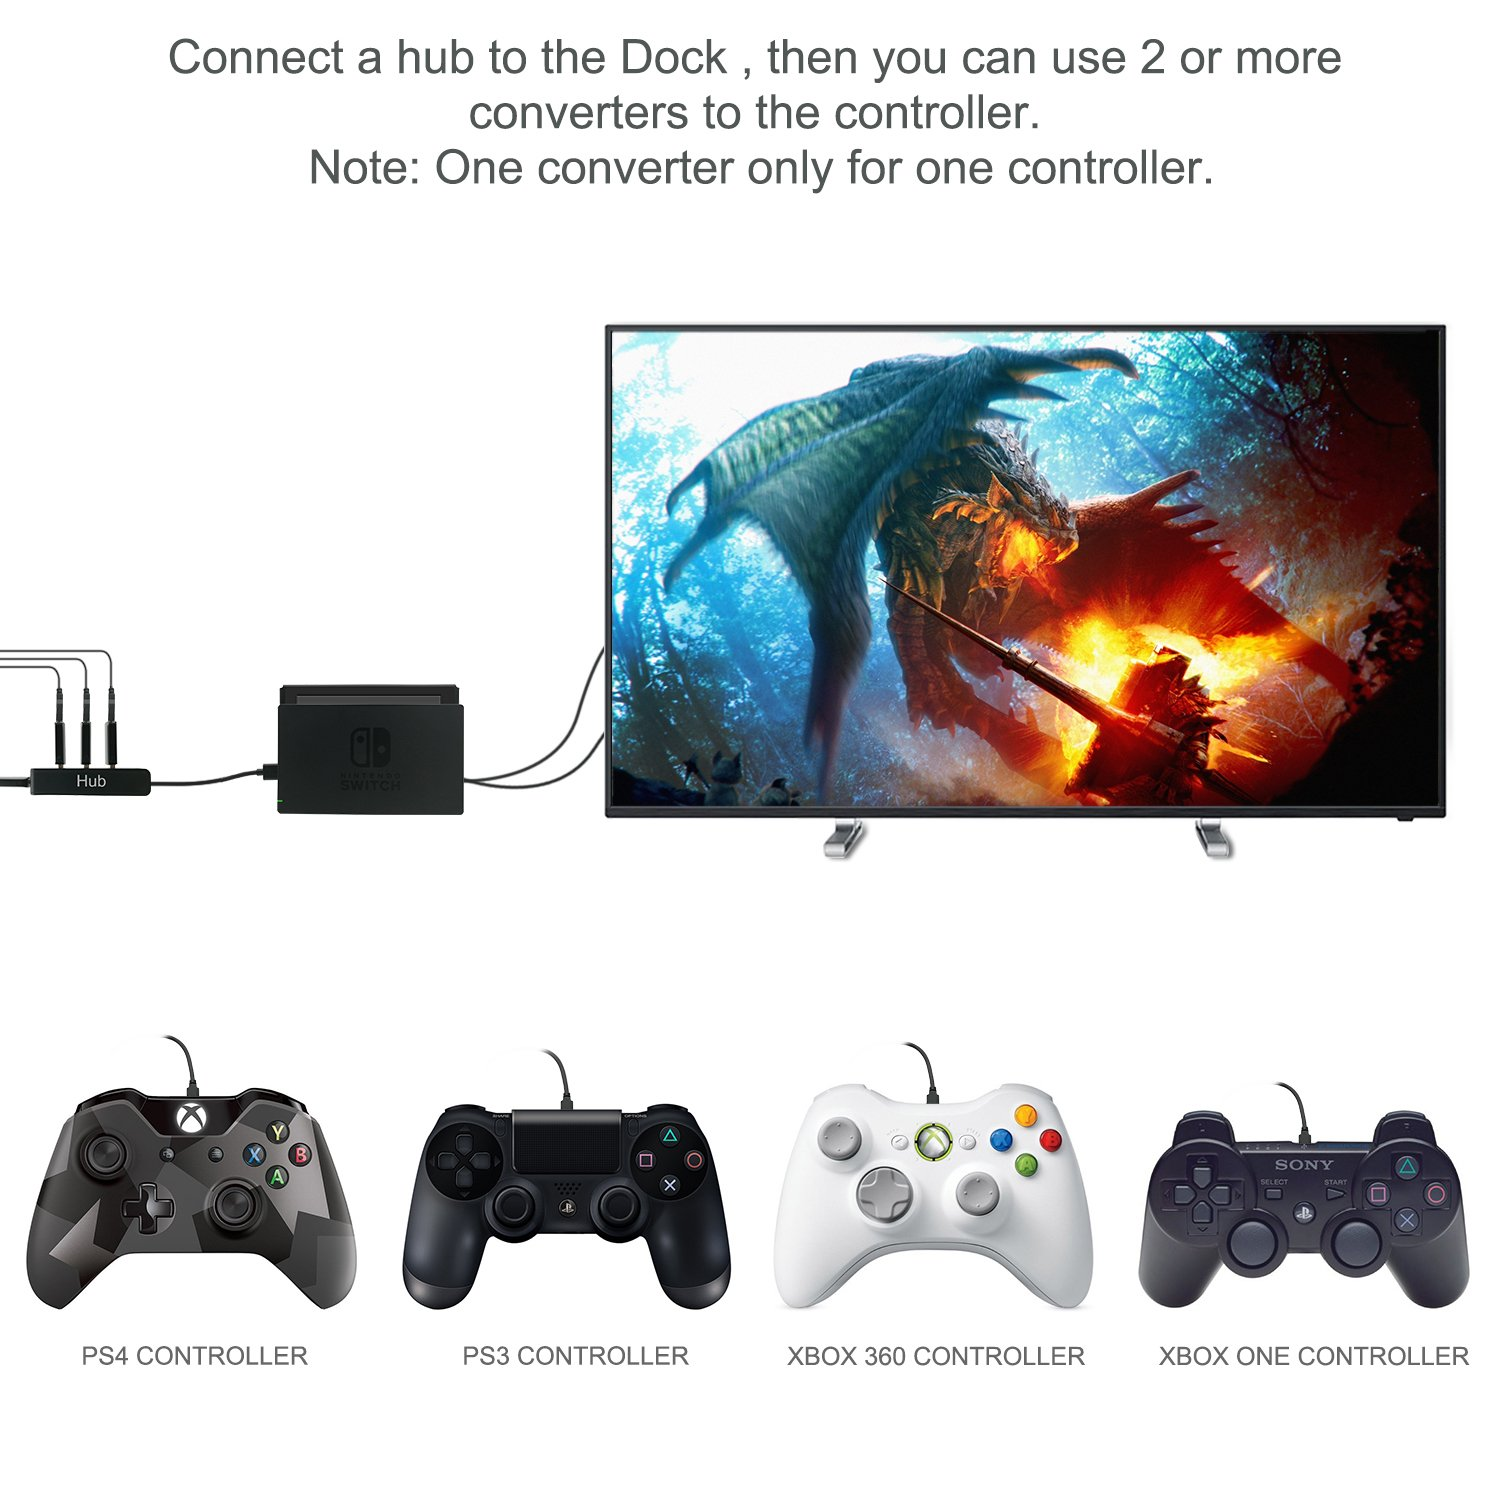 Fastsnail Controller Converter For Nintendo Switch Wireless Control Single Station Download This Document Makes Ps3 Ps4 Dualshock Xbox One Controllers Compatible With Your Support Vibration